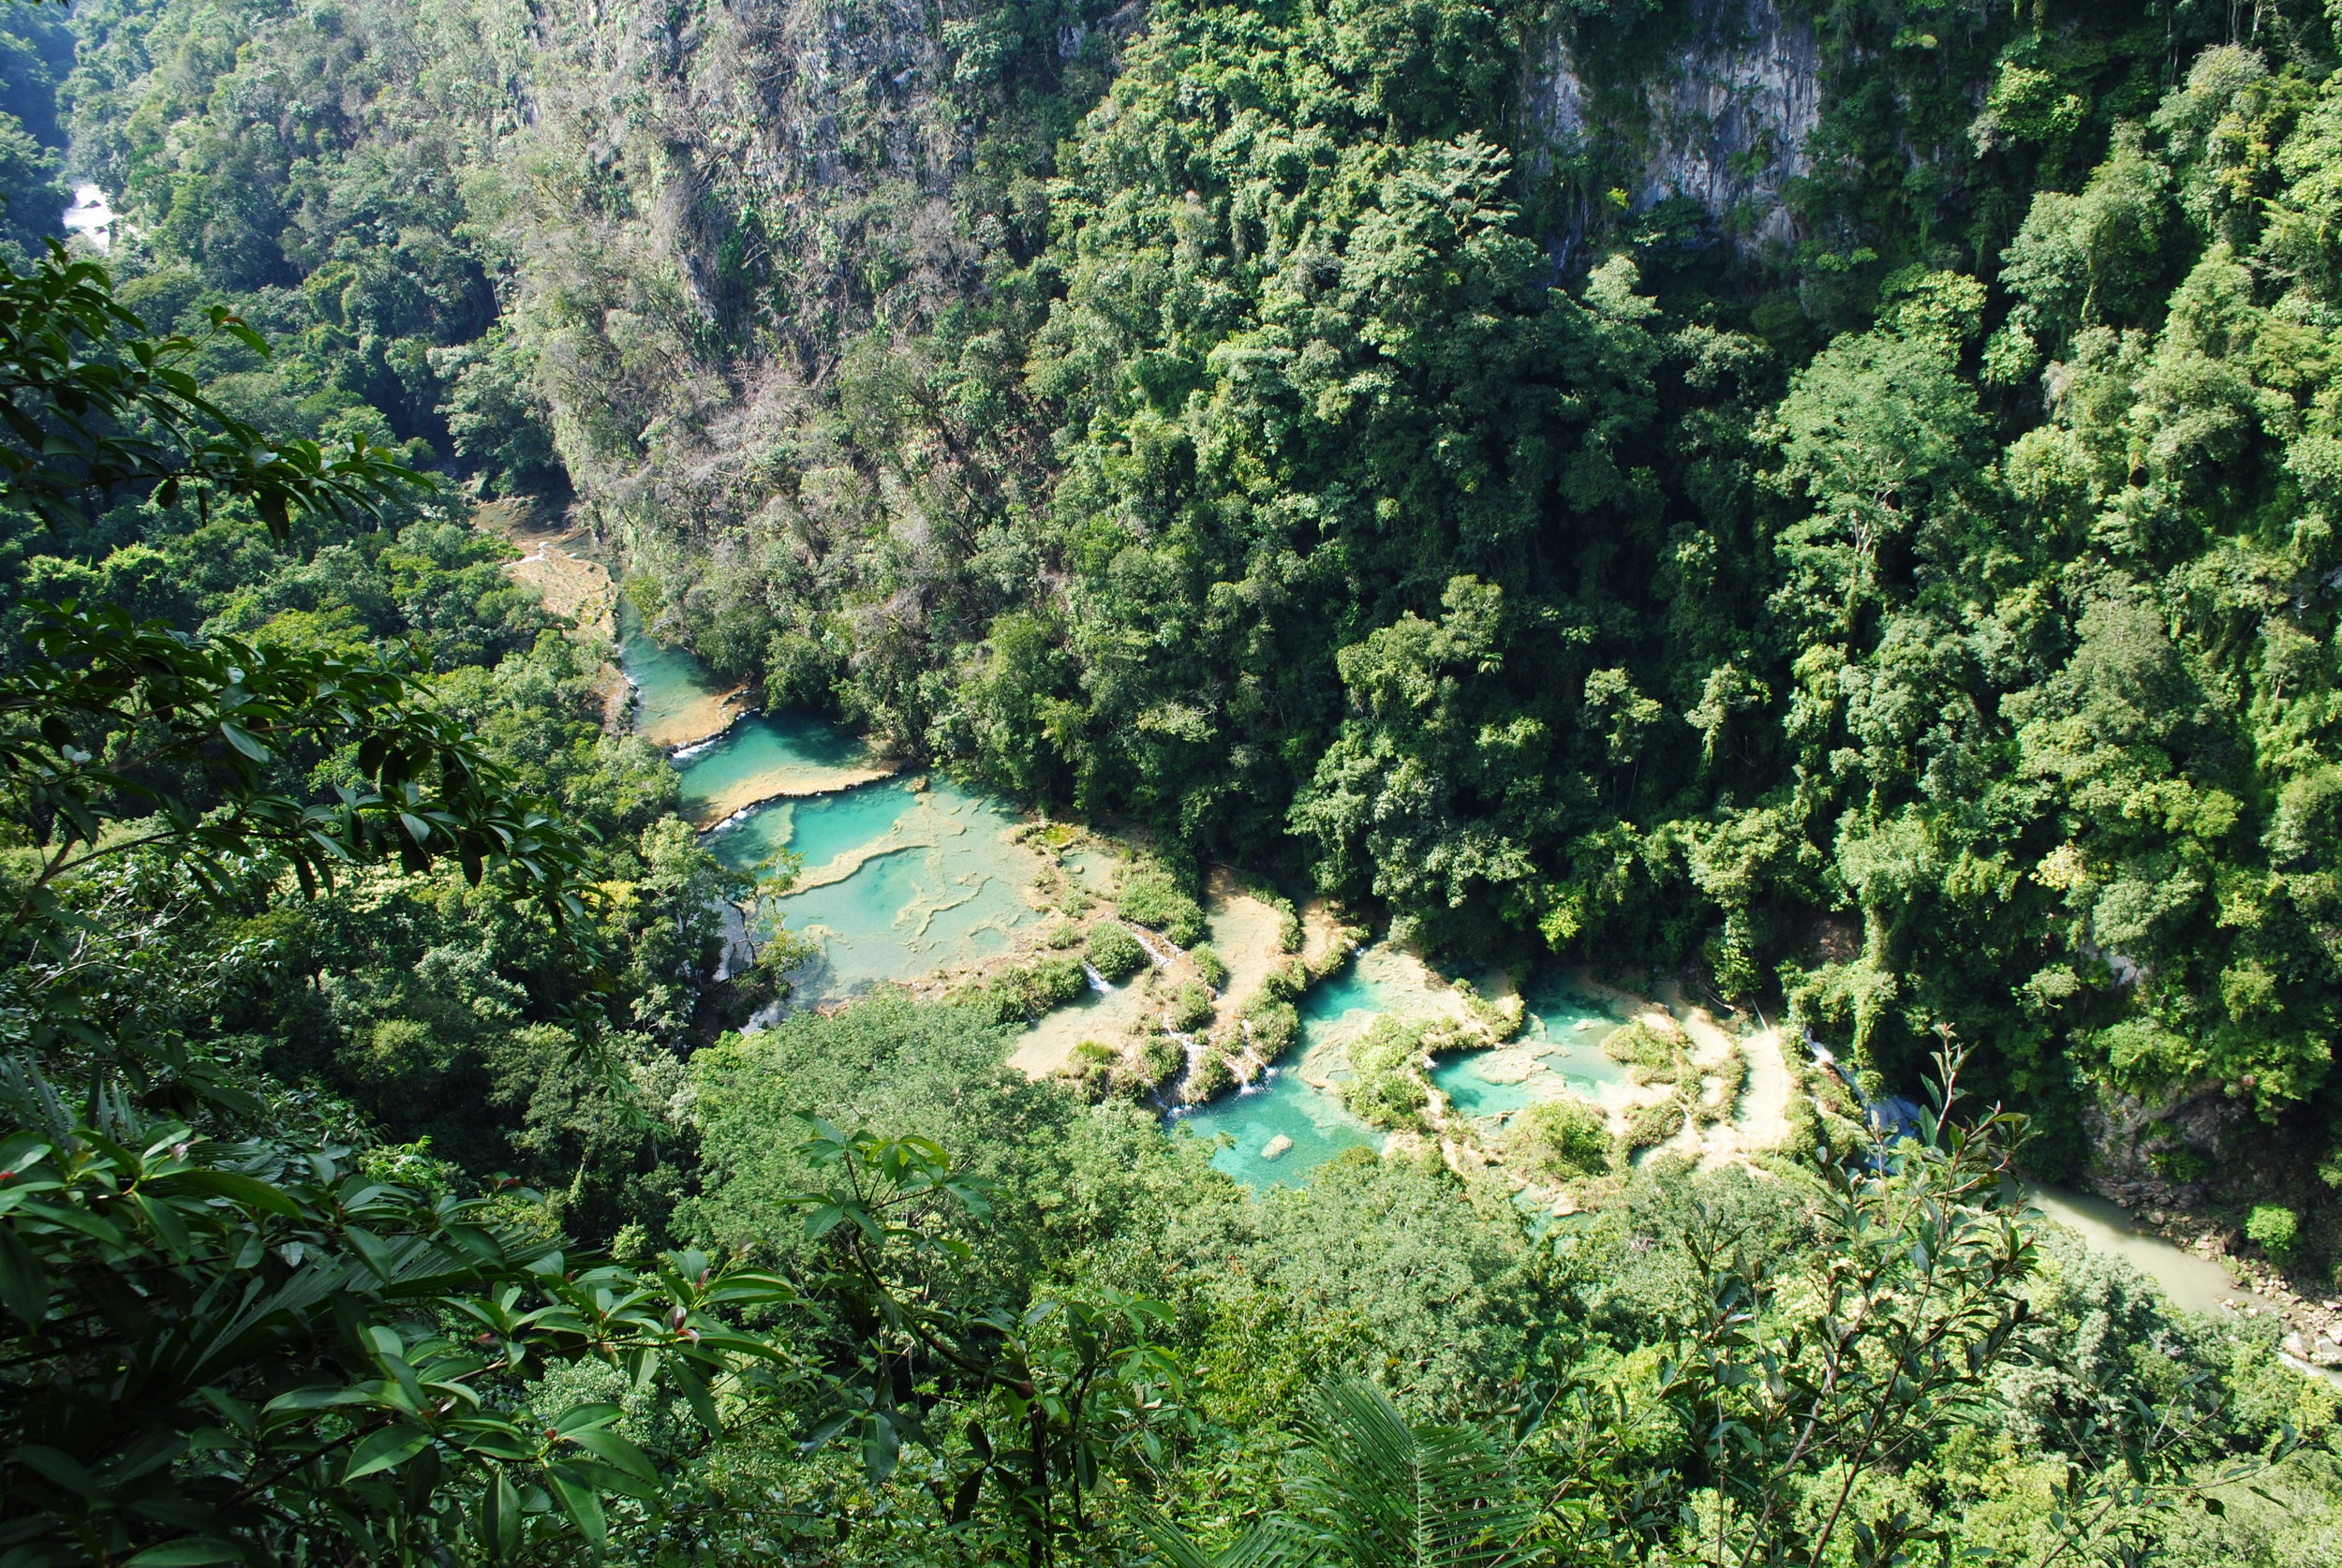 Semuc Champey in Guatemala - a tour that I 100% wanted to go on and was worth the money